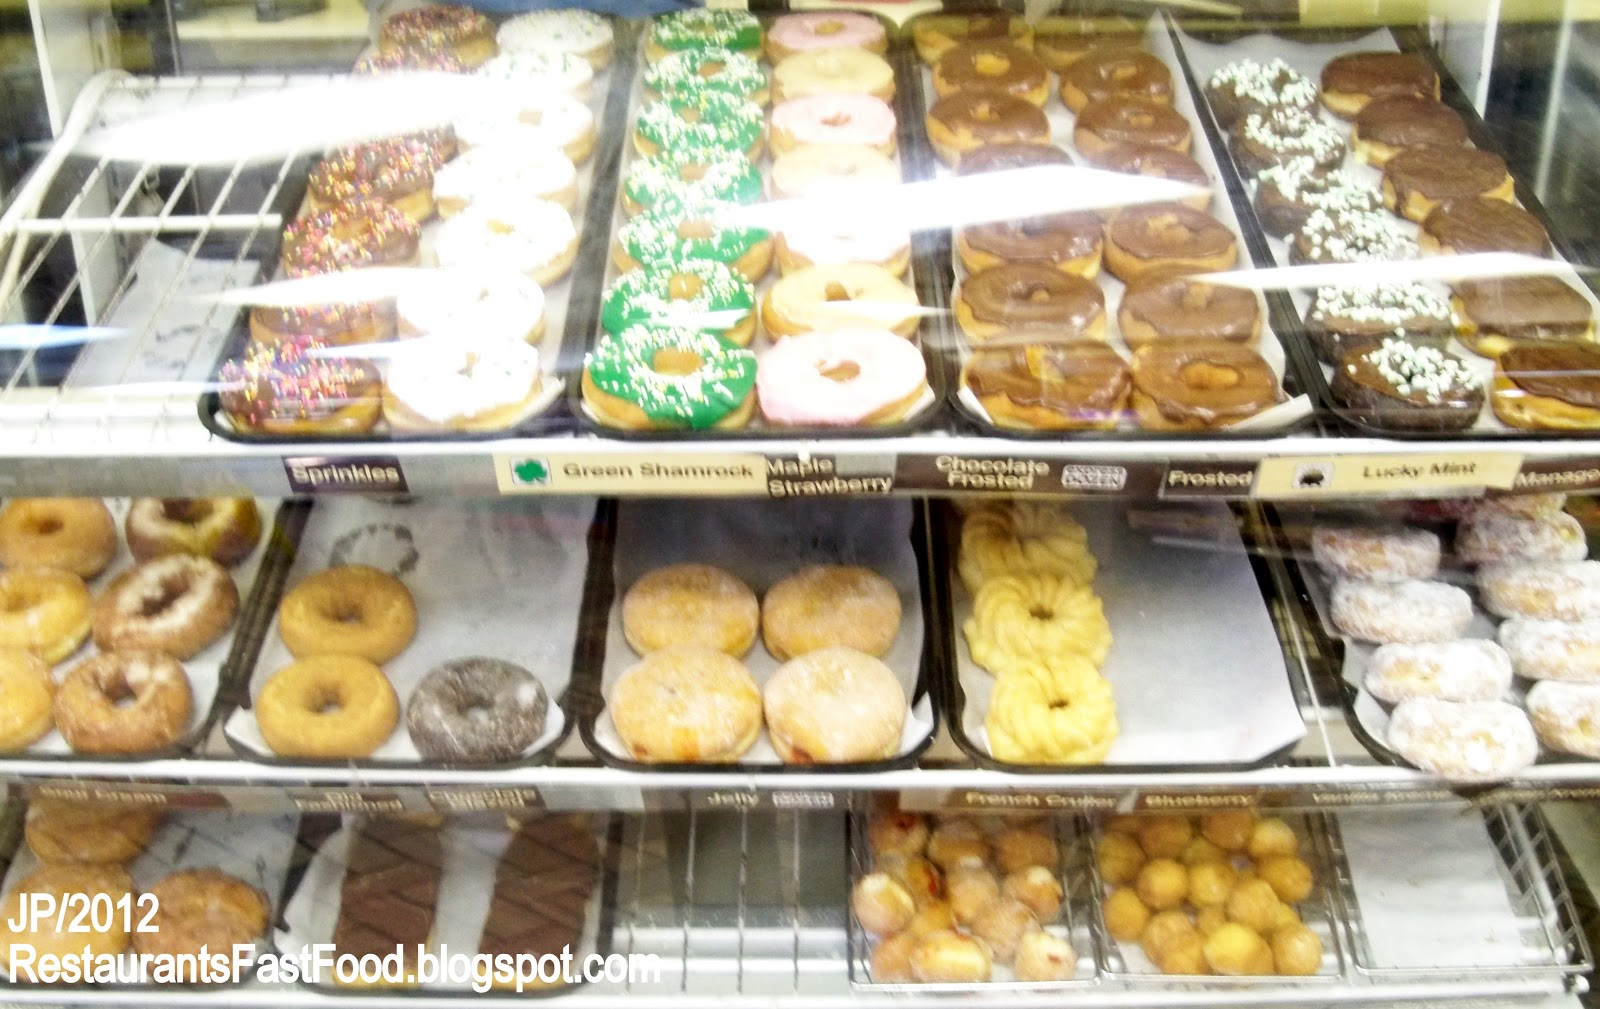 Dunkin Donuts Display Case Doughnut Coffee Glazed Frosted Iced Pastries Panama City Beach Florida